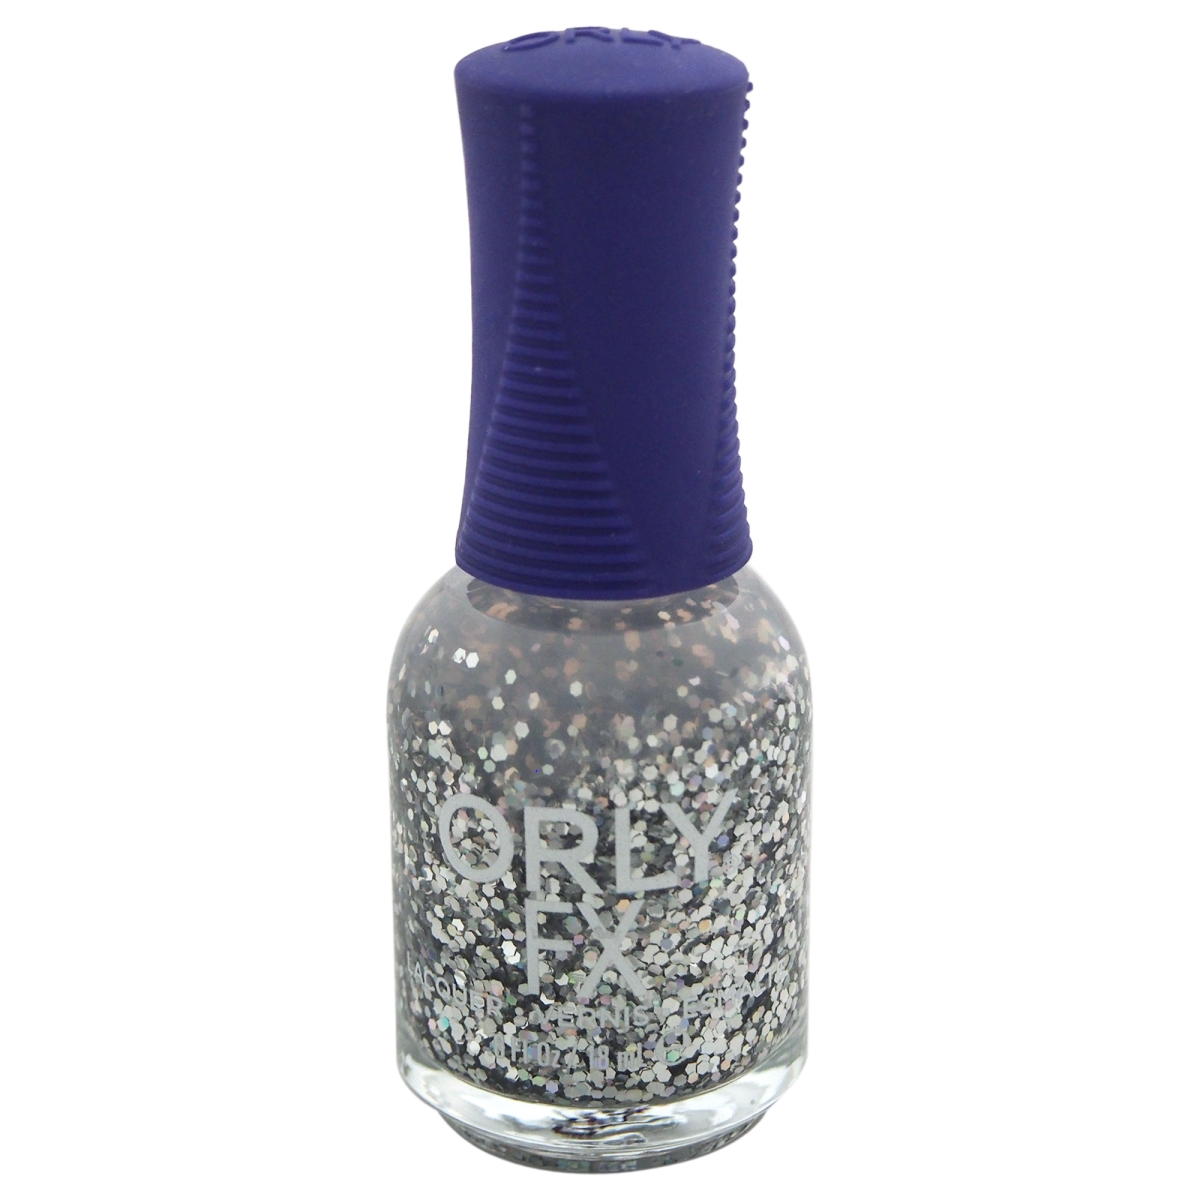 Orly W-C-7853 0.6 oz Nail Lacquer No.20480 Holy Holo Nail Polish for Women